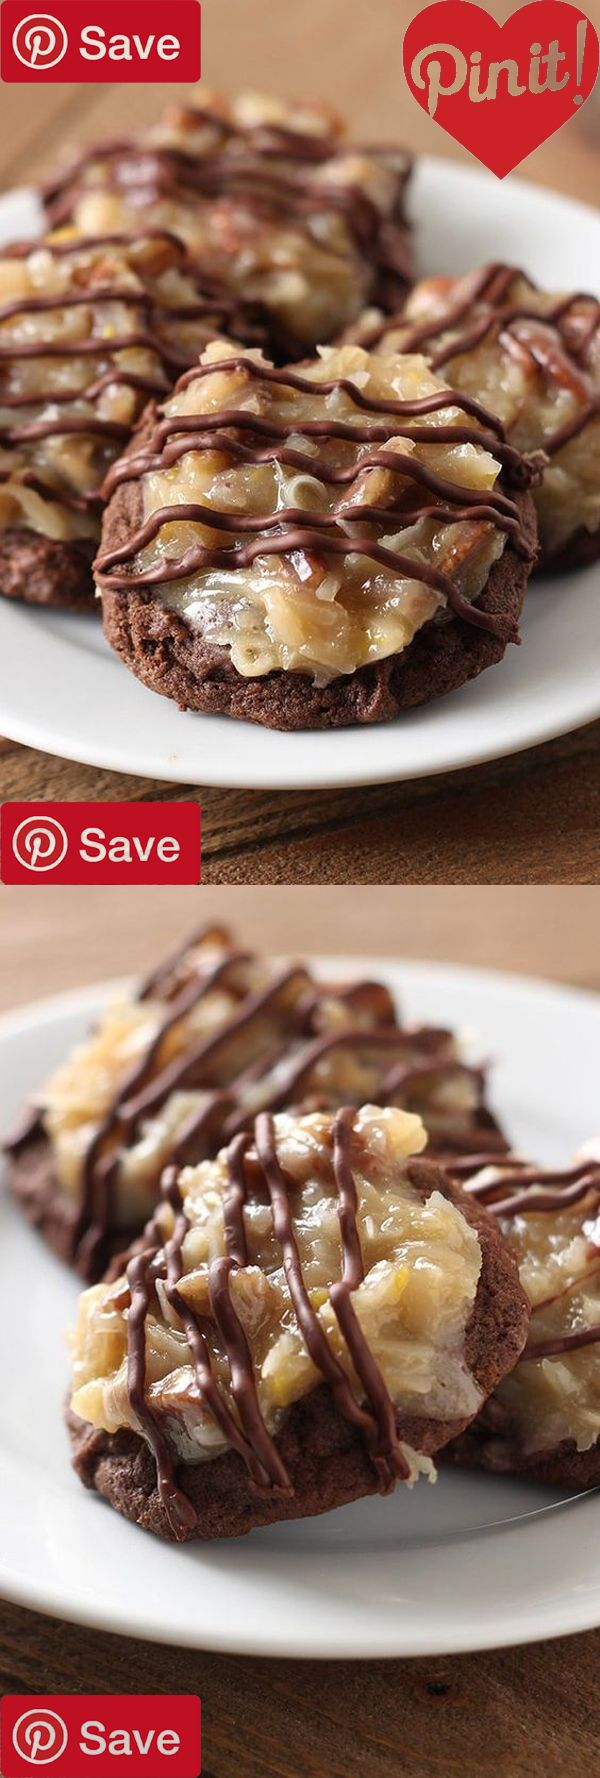 German Chocolate Cookies - German Chocolate Cookies feature a homemade ultra soft chewy and gooey double chocolate cookie loaded with a flavorful coconut pecan #delicious #diy #Easy #food #love #recipe #recipes #tutorial #yummy @mabarto - Make sure to fol